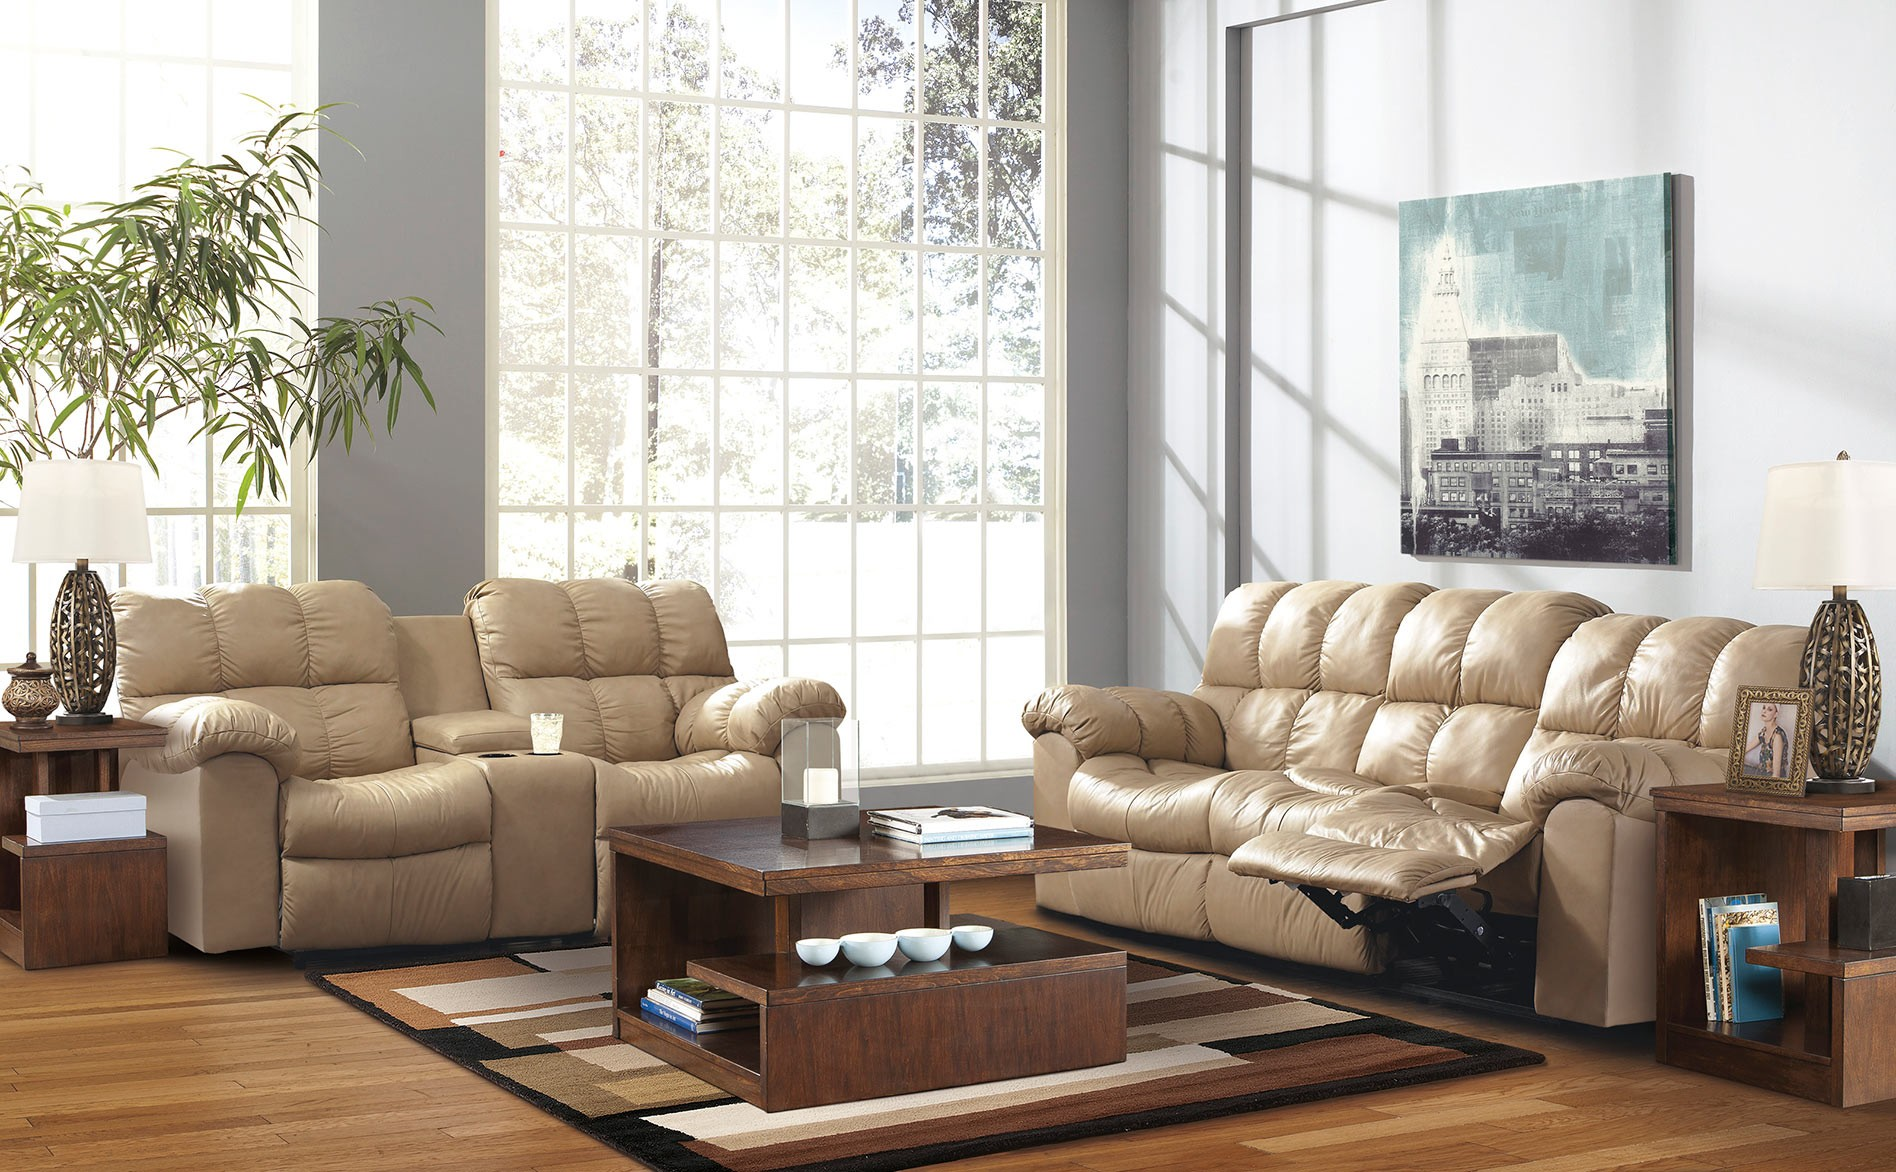 cream leather living room chairs comfortable reclining sofa for resting tired body 13608 | Unique Modern Living Room Design Interior with Cream Reclining Sofa Furniture Made from Leather Material